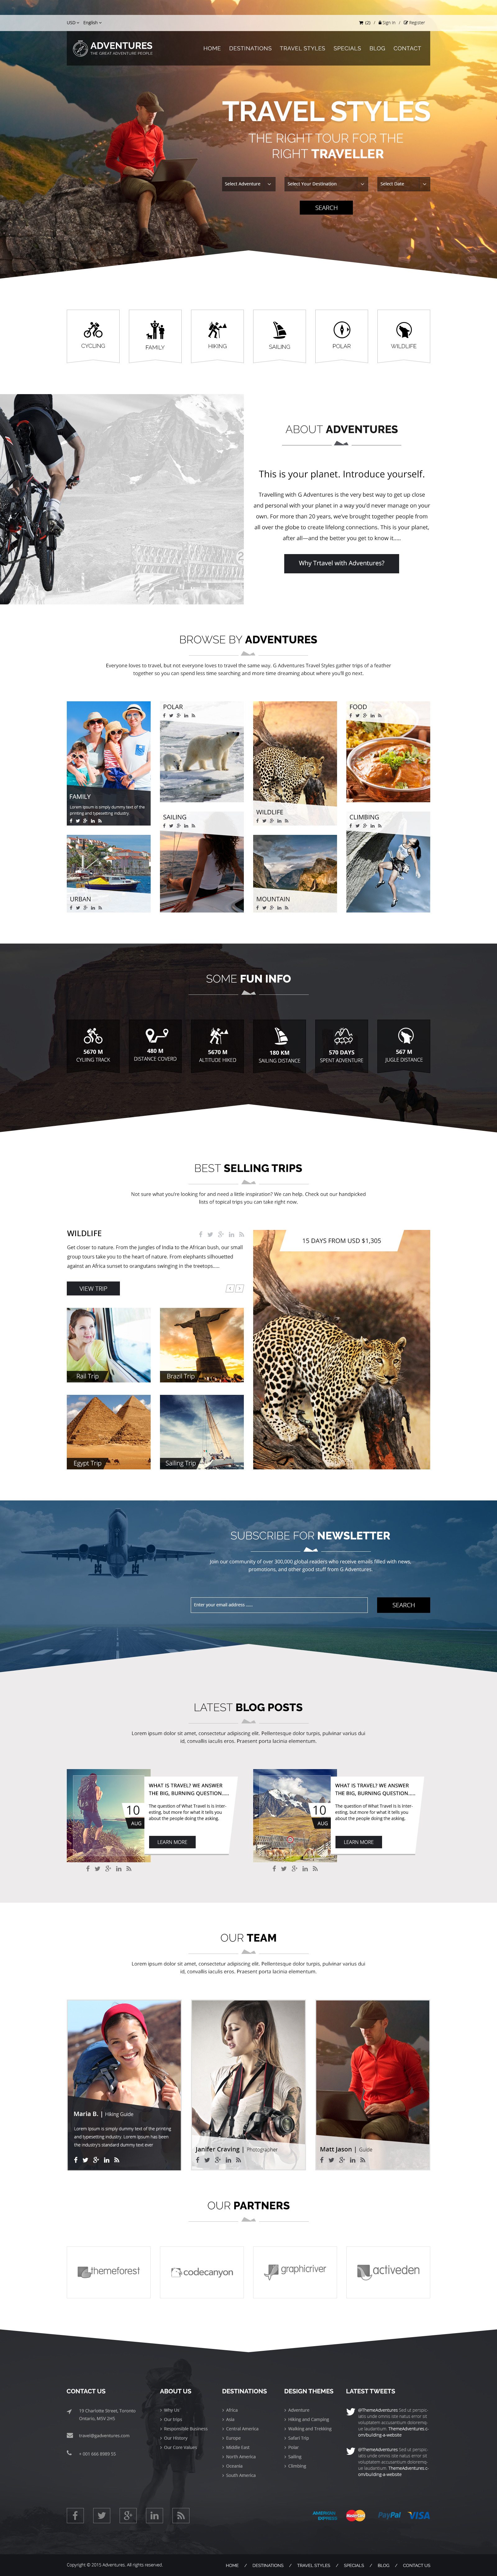 Adventures and Tour PSD Template example image 2